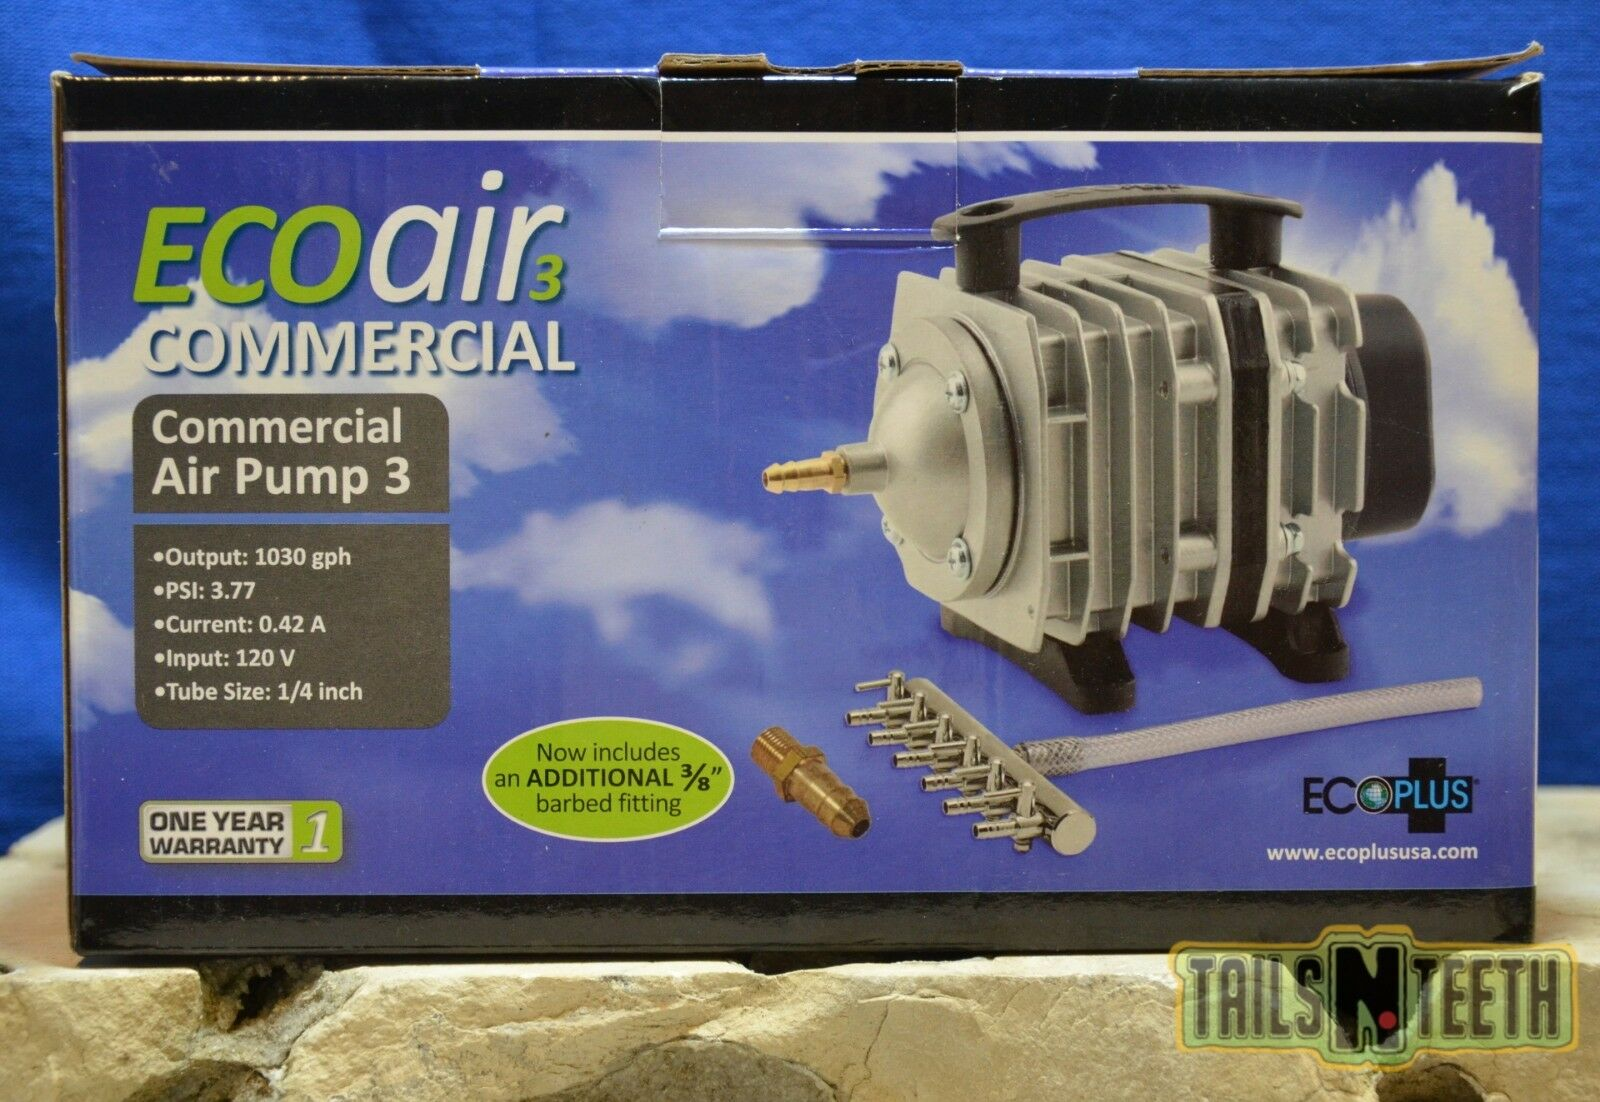 EcoPlus® Commercial Air Pump - EcoAir3 Commercial - 1030gph - 3.77PSI - 35watt